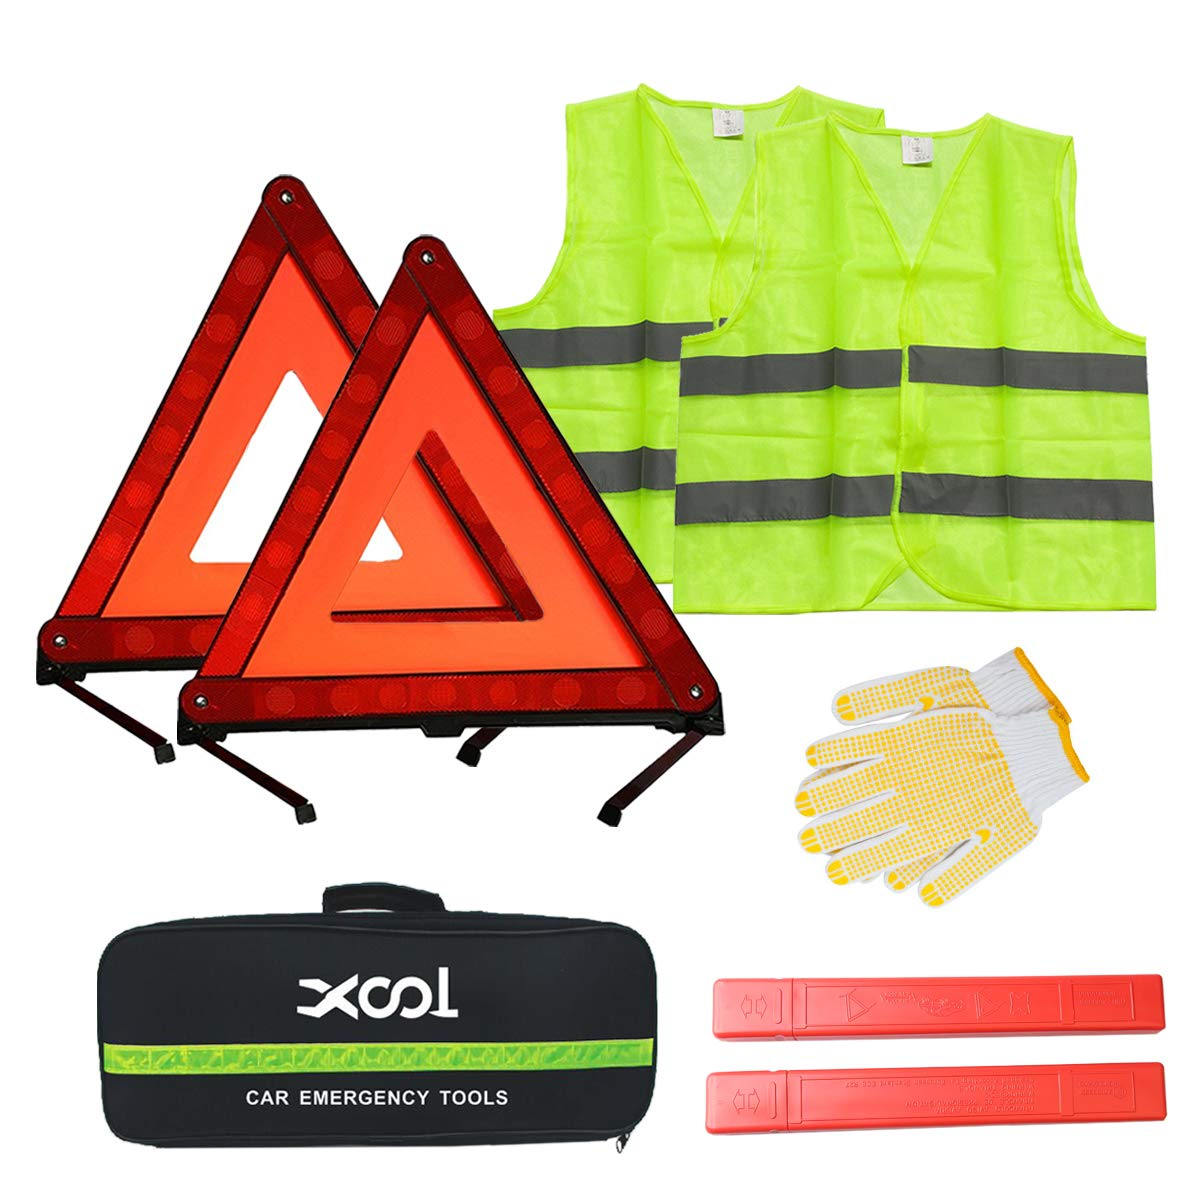 XOOL Safety Triangle Warning Kit,Car Roadside Emergency Kit with Reflective Warning Triangle,Visibility Roadside Vest, Storage Bag and Glove for Use Roadside Breakdowns Emergencies